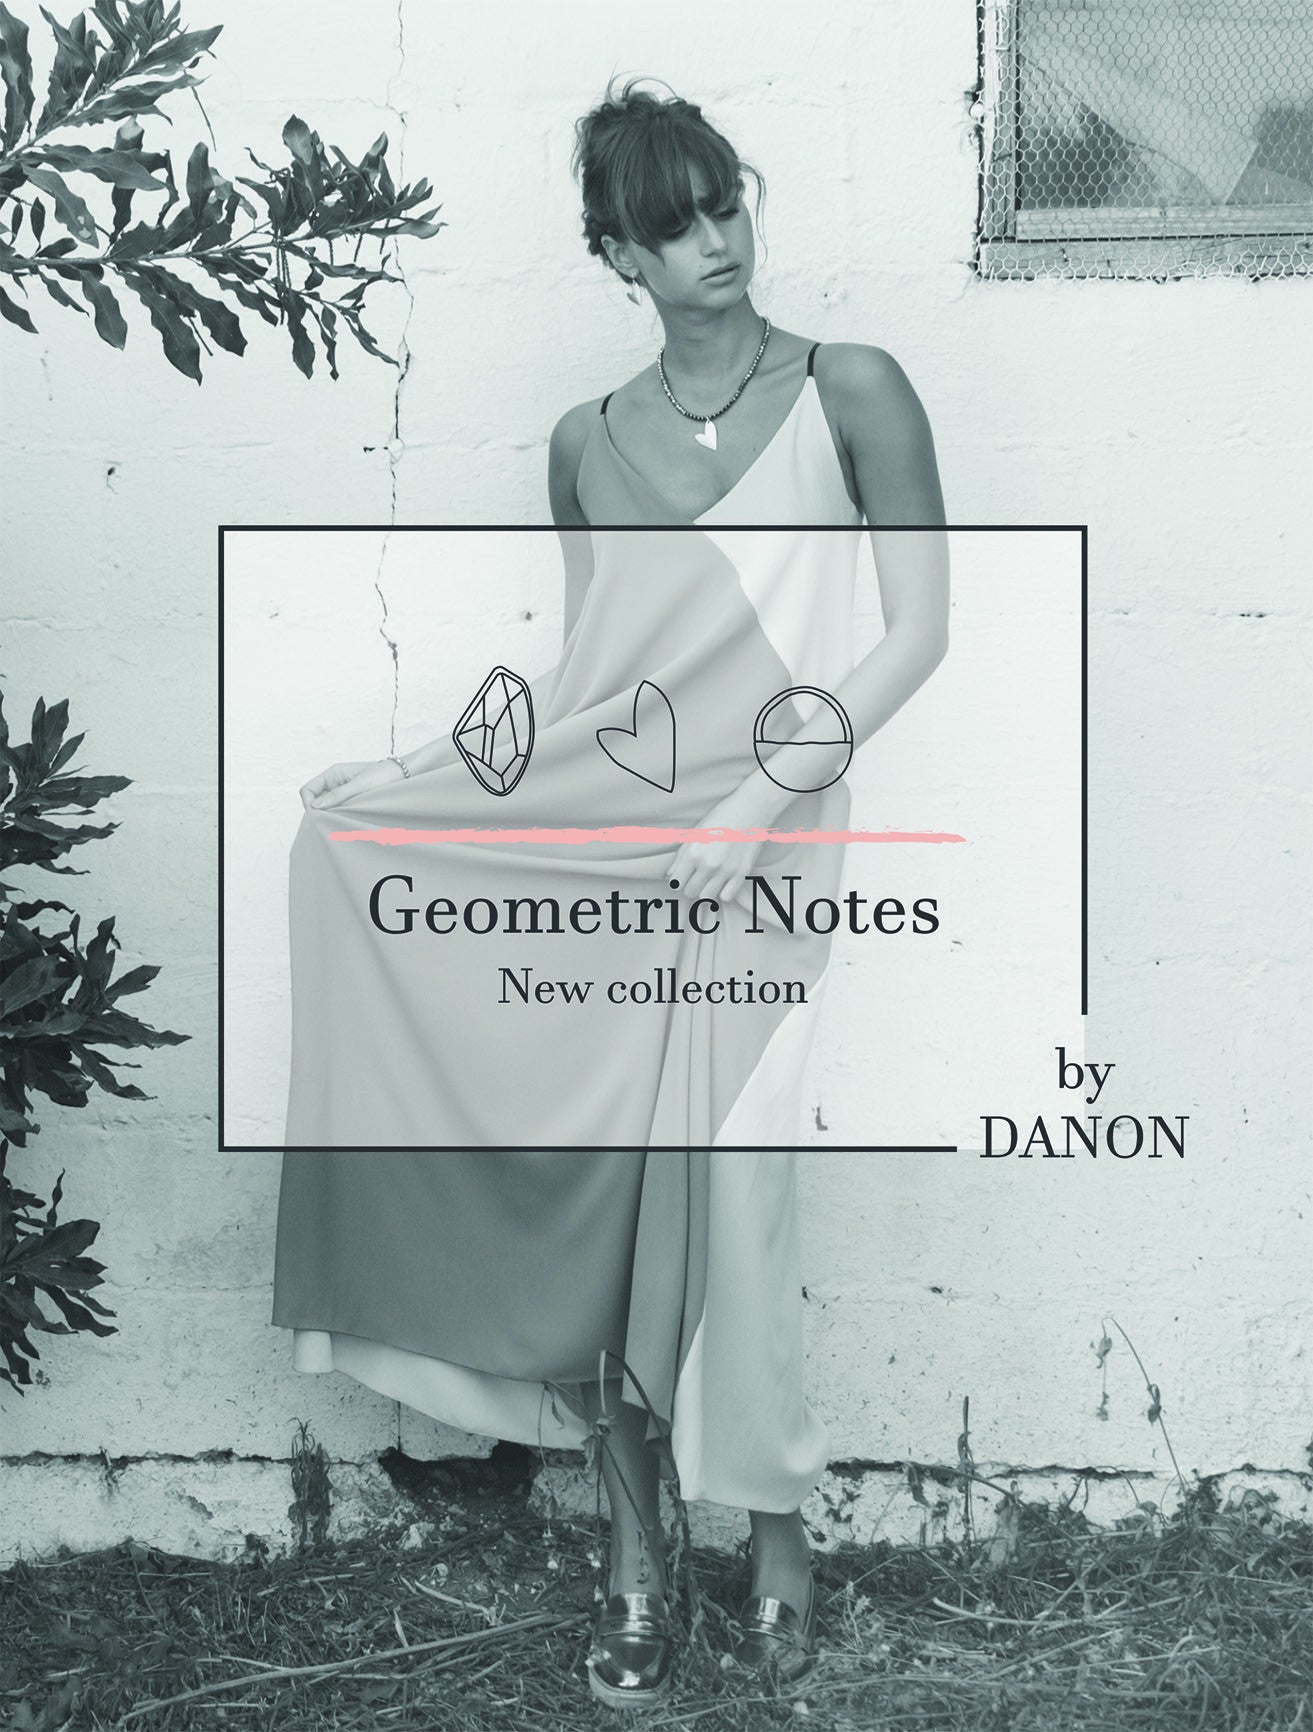 Geometric notes by DANON